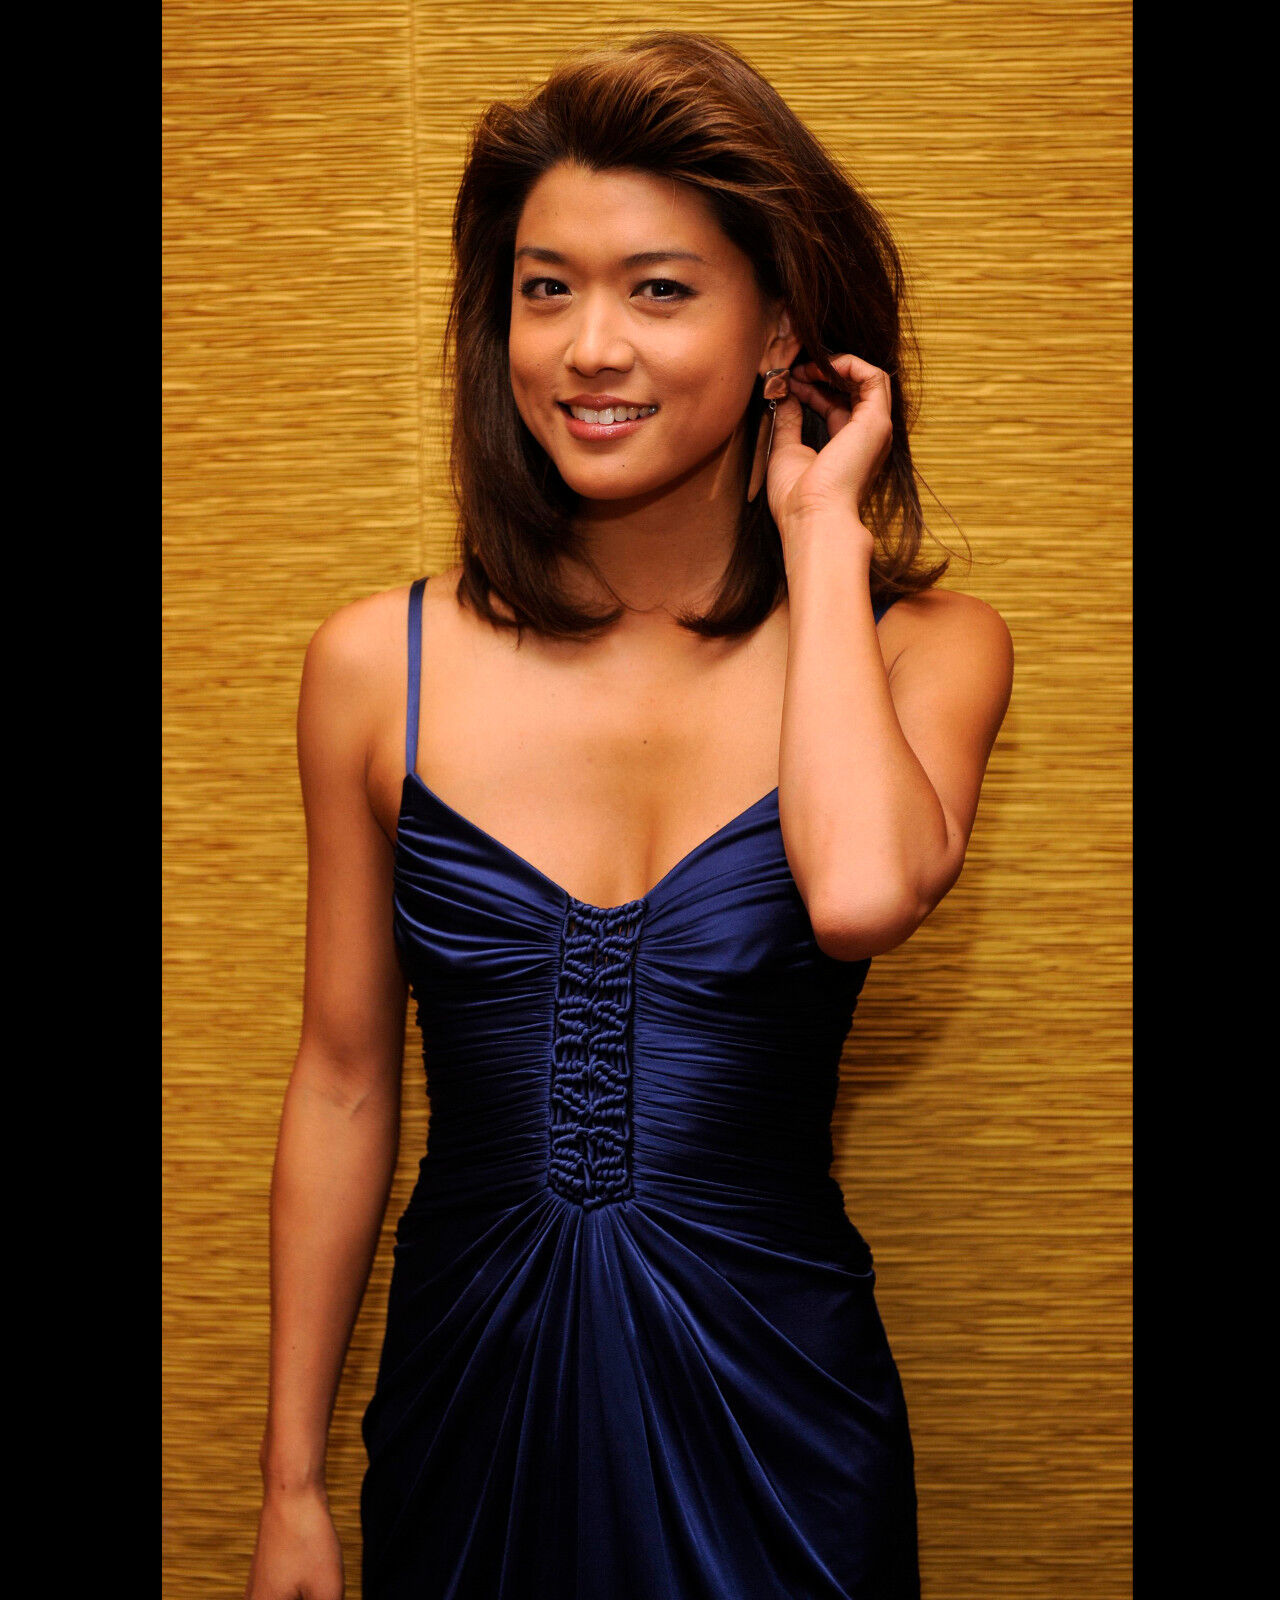 Grace park 8x10 photo picture pic hot sexy candid 23